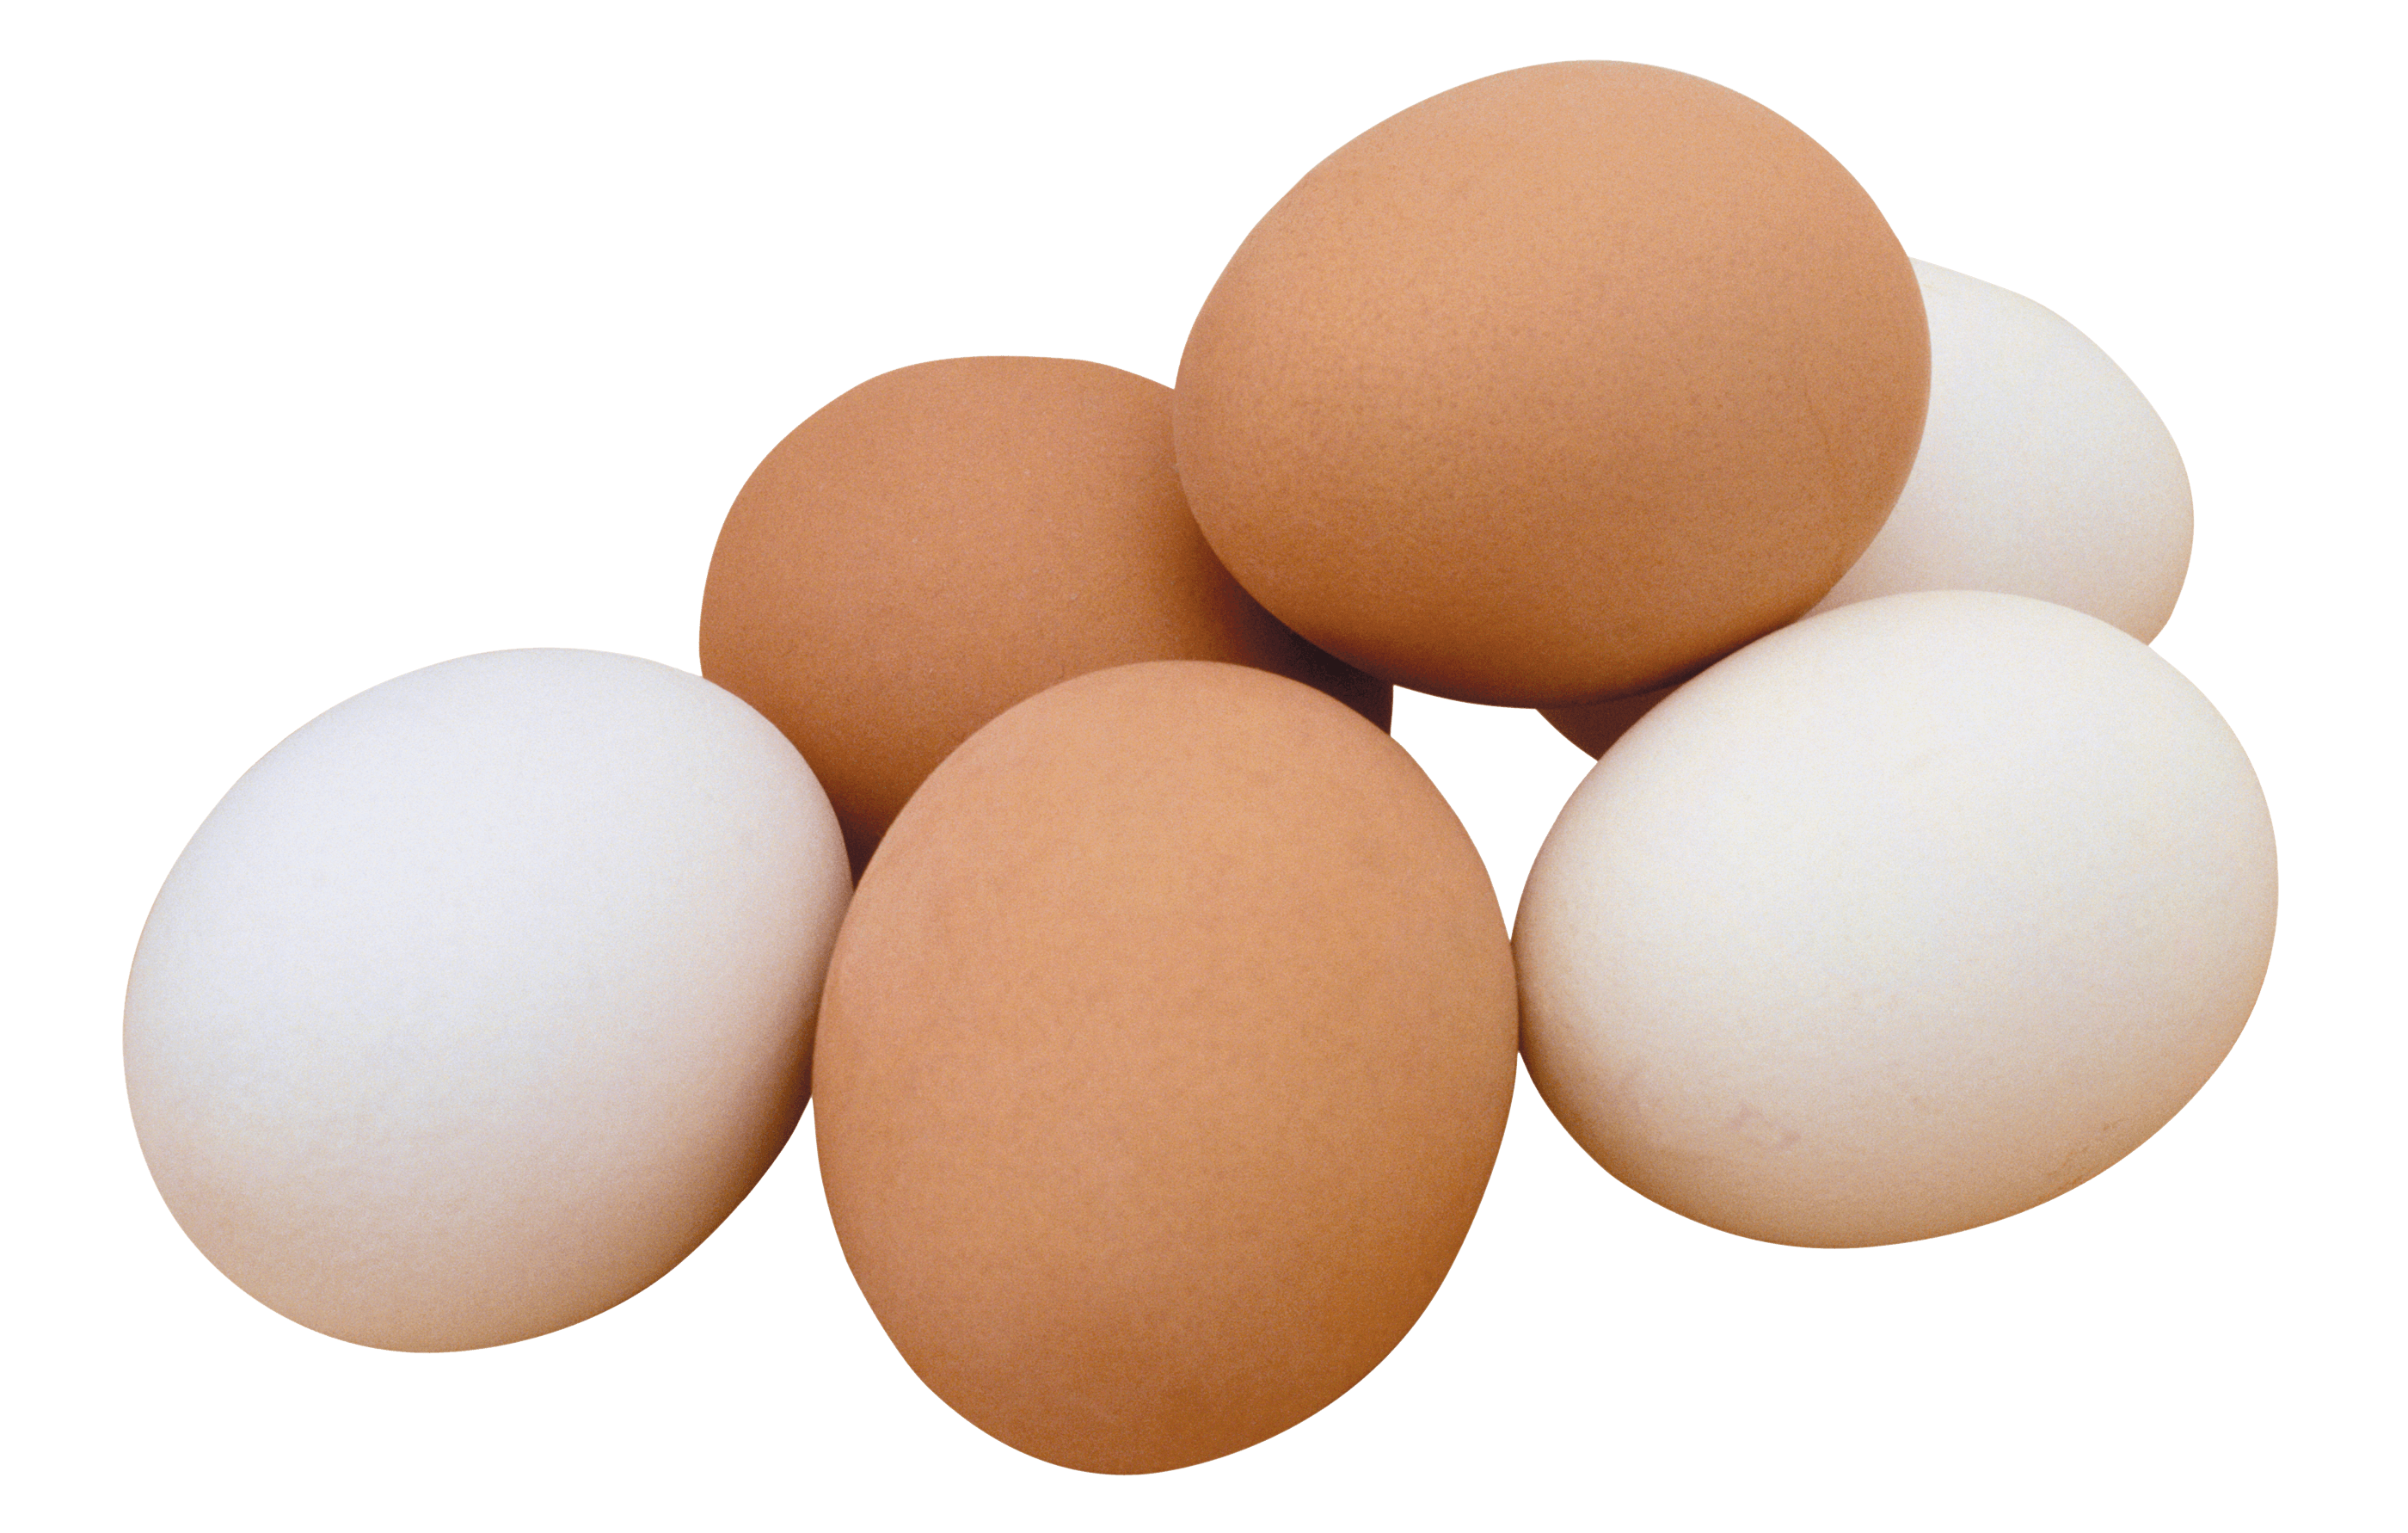 white eggs png